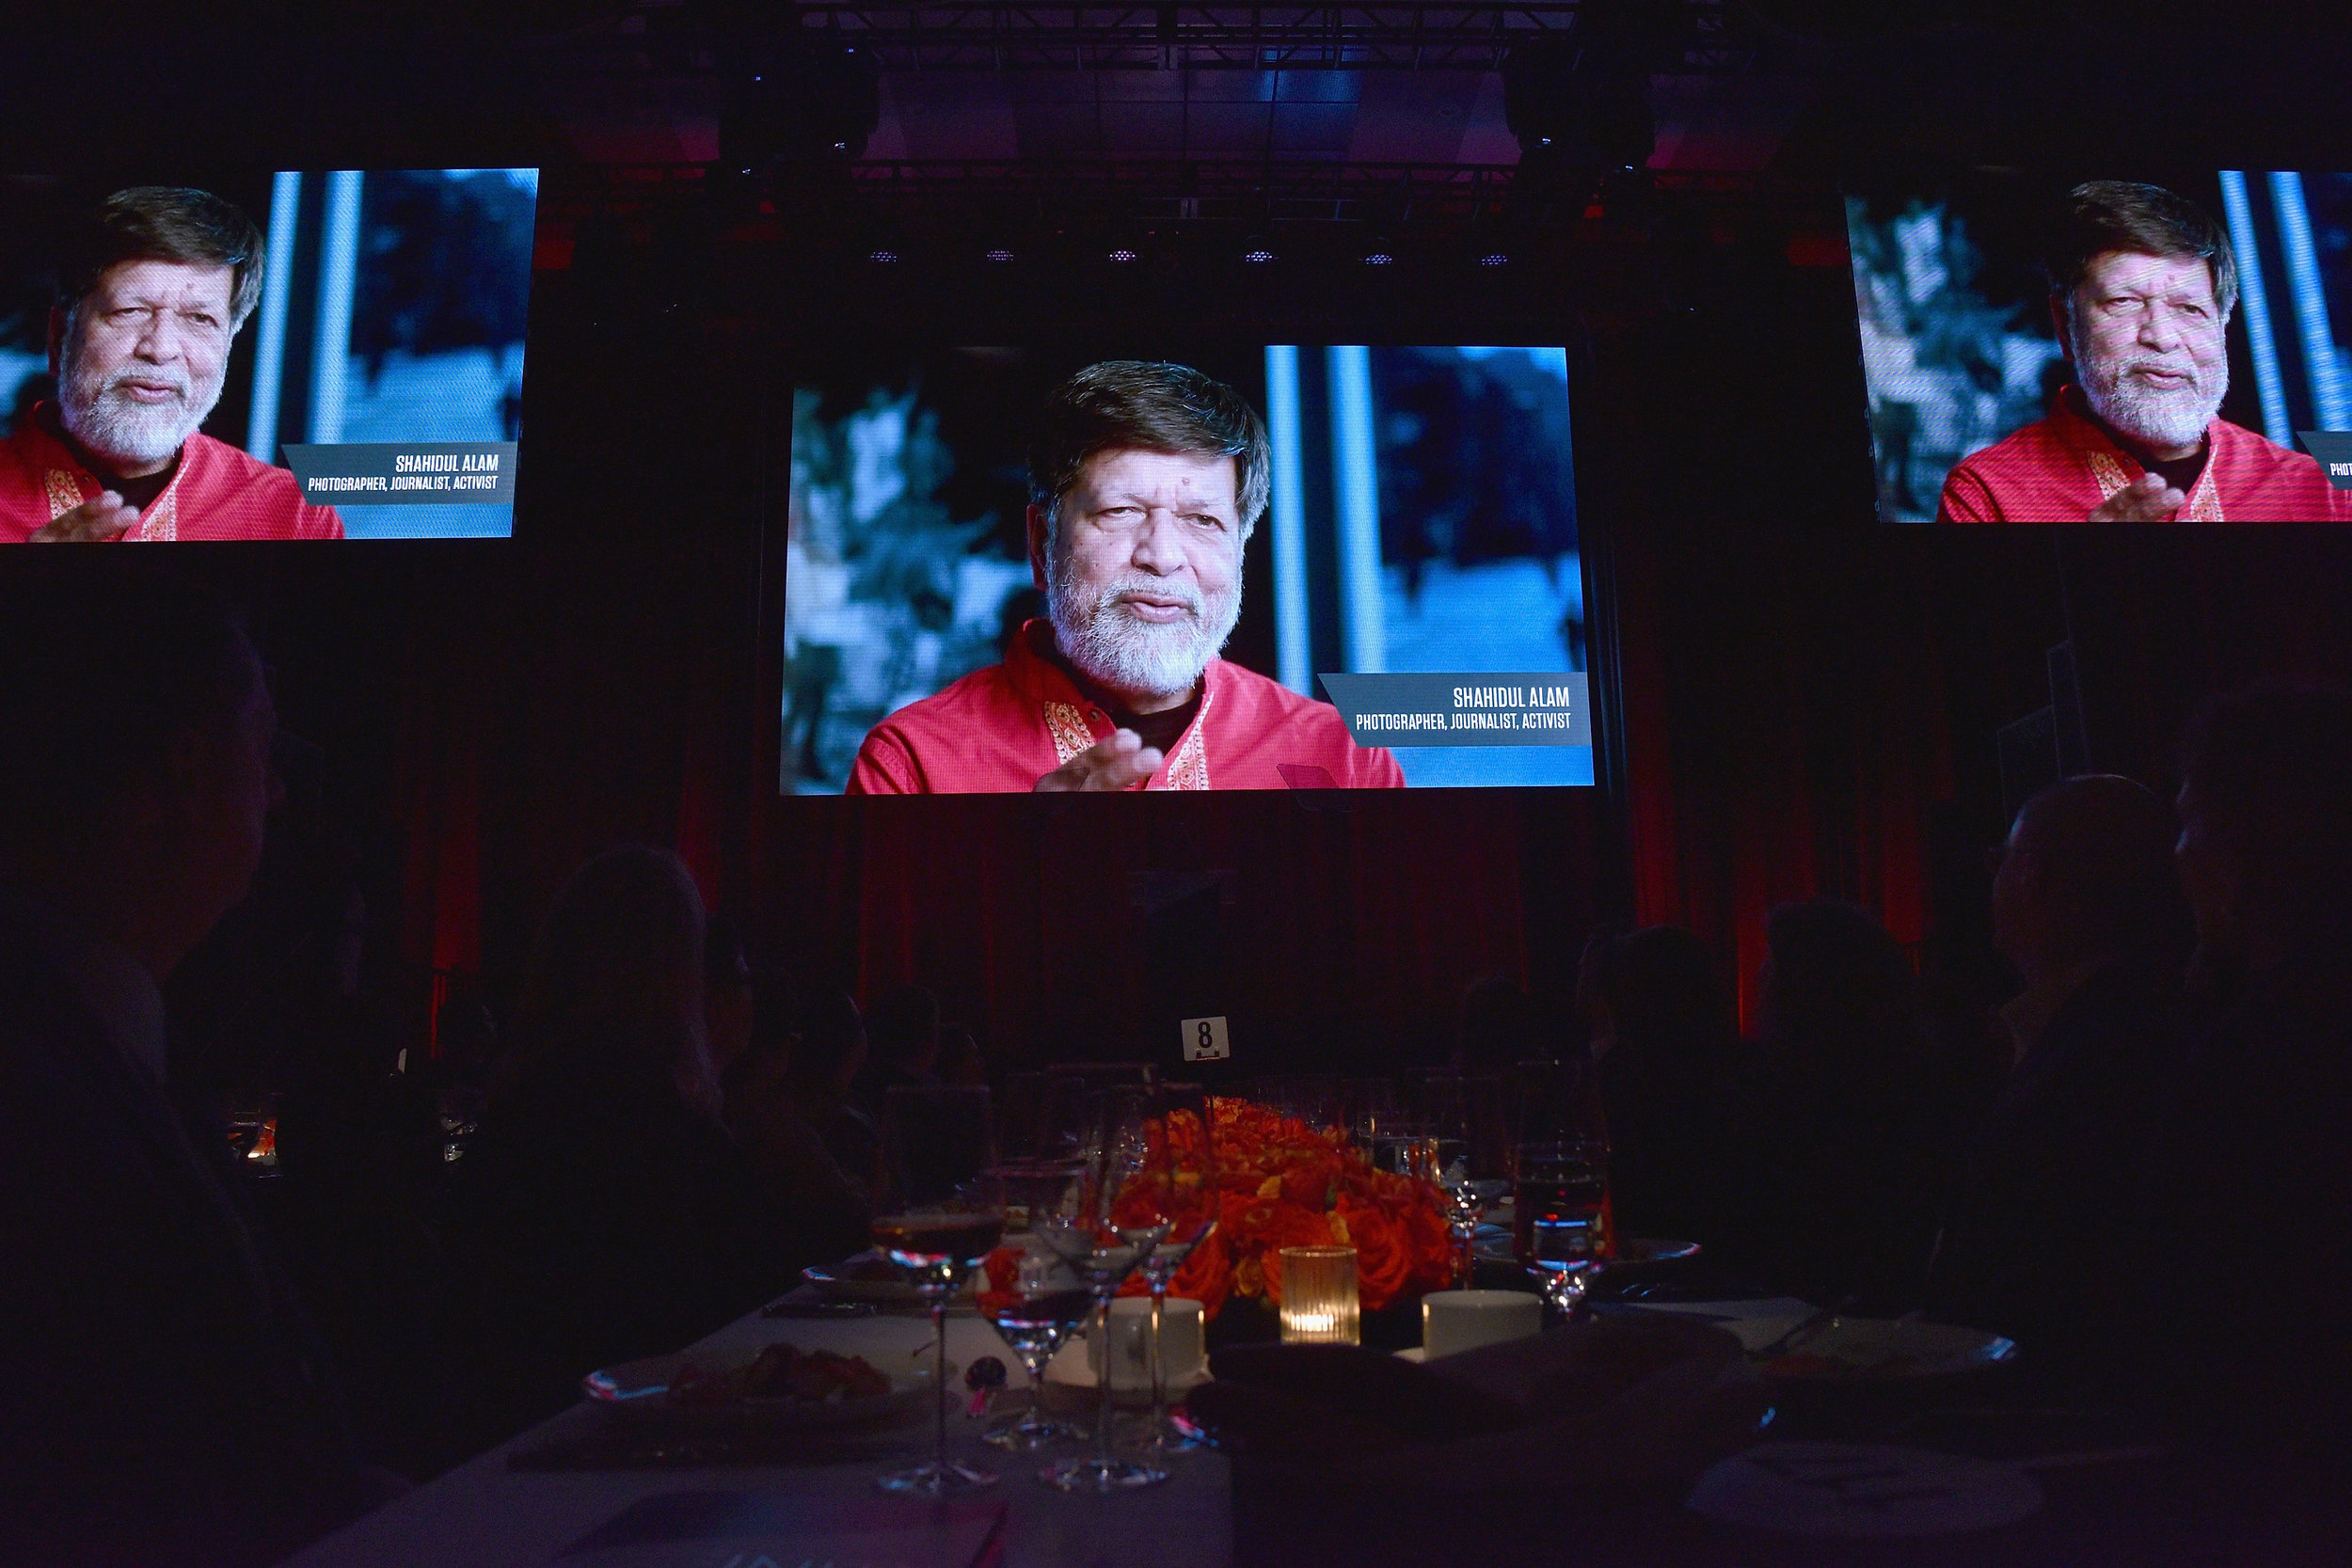 NEW YORK, NY - APRIL 02: Guests watch a video featuring honoree and photographer Shahidul Alam during The International Center Of Photography's 35th Annual Infinity Awards at The Ziegfeld Ballroom on April 2, 2019 in New York City. (Photo by Bryan Bedder/Getty Images for International Center of Photography)